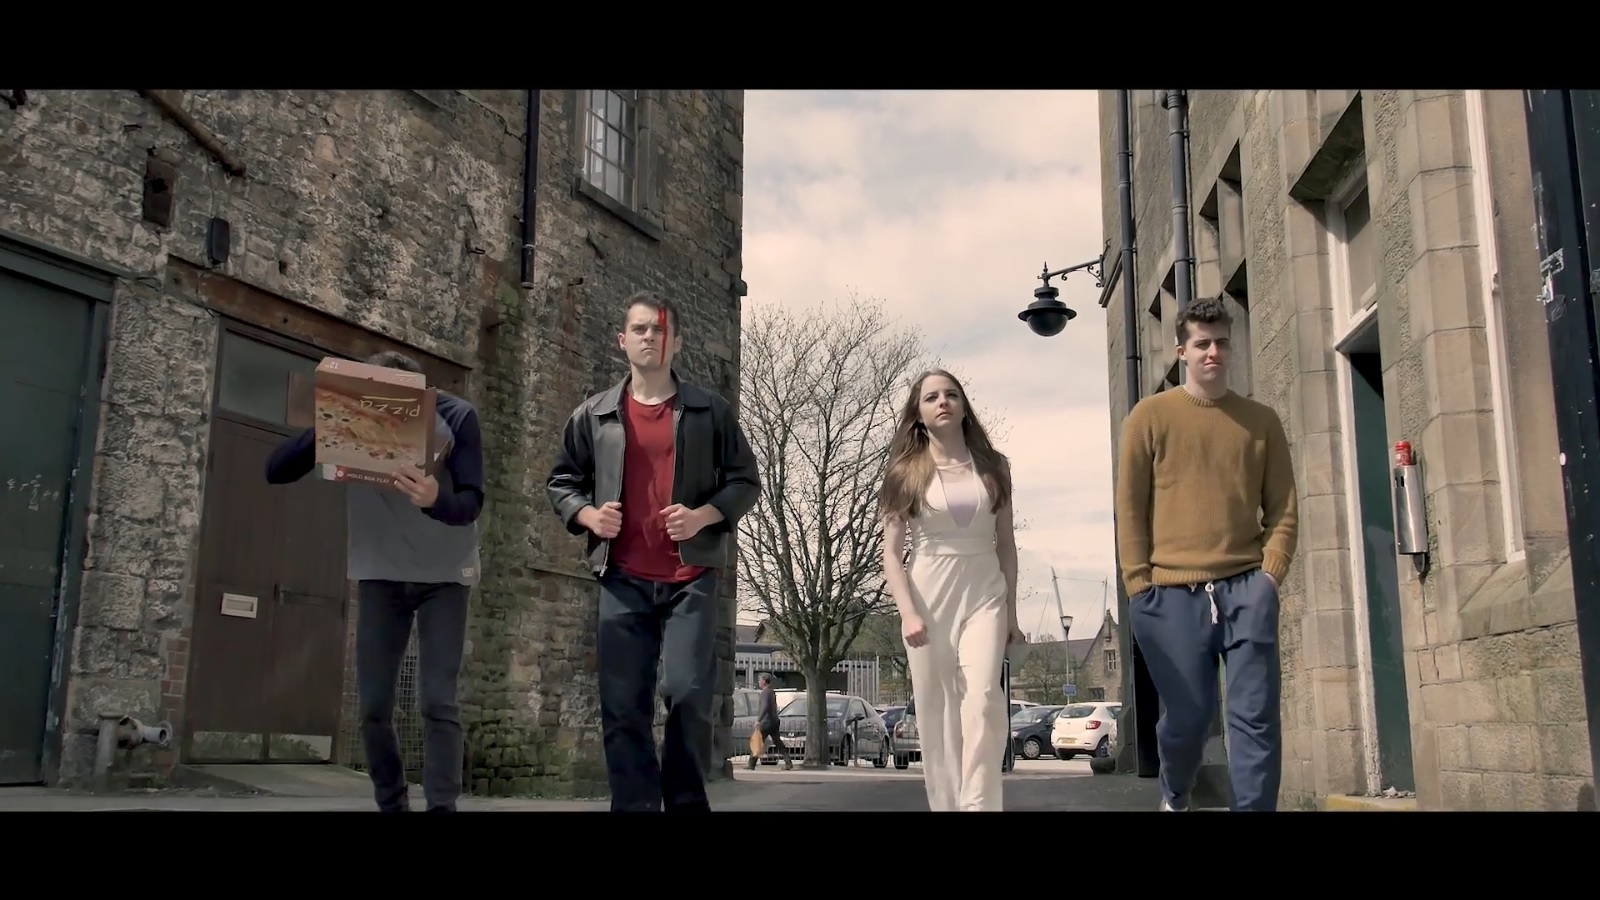 Still from LUFP short film Worst Case Scenario featuring actors, Kasia Bentkowska, Victor Pirvu and Olly Hill